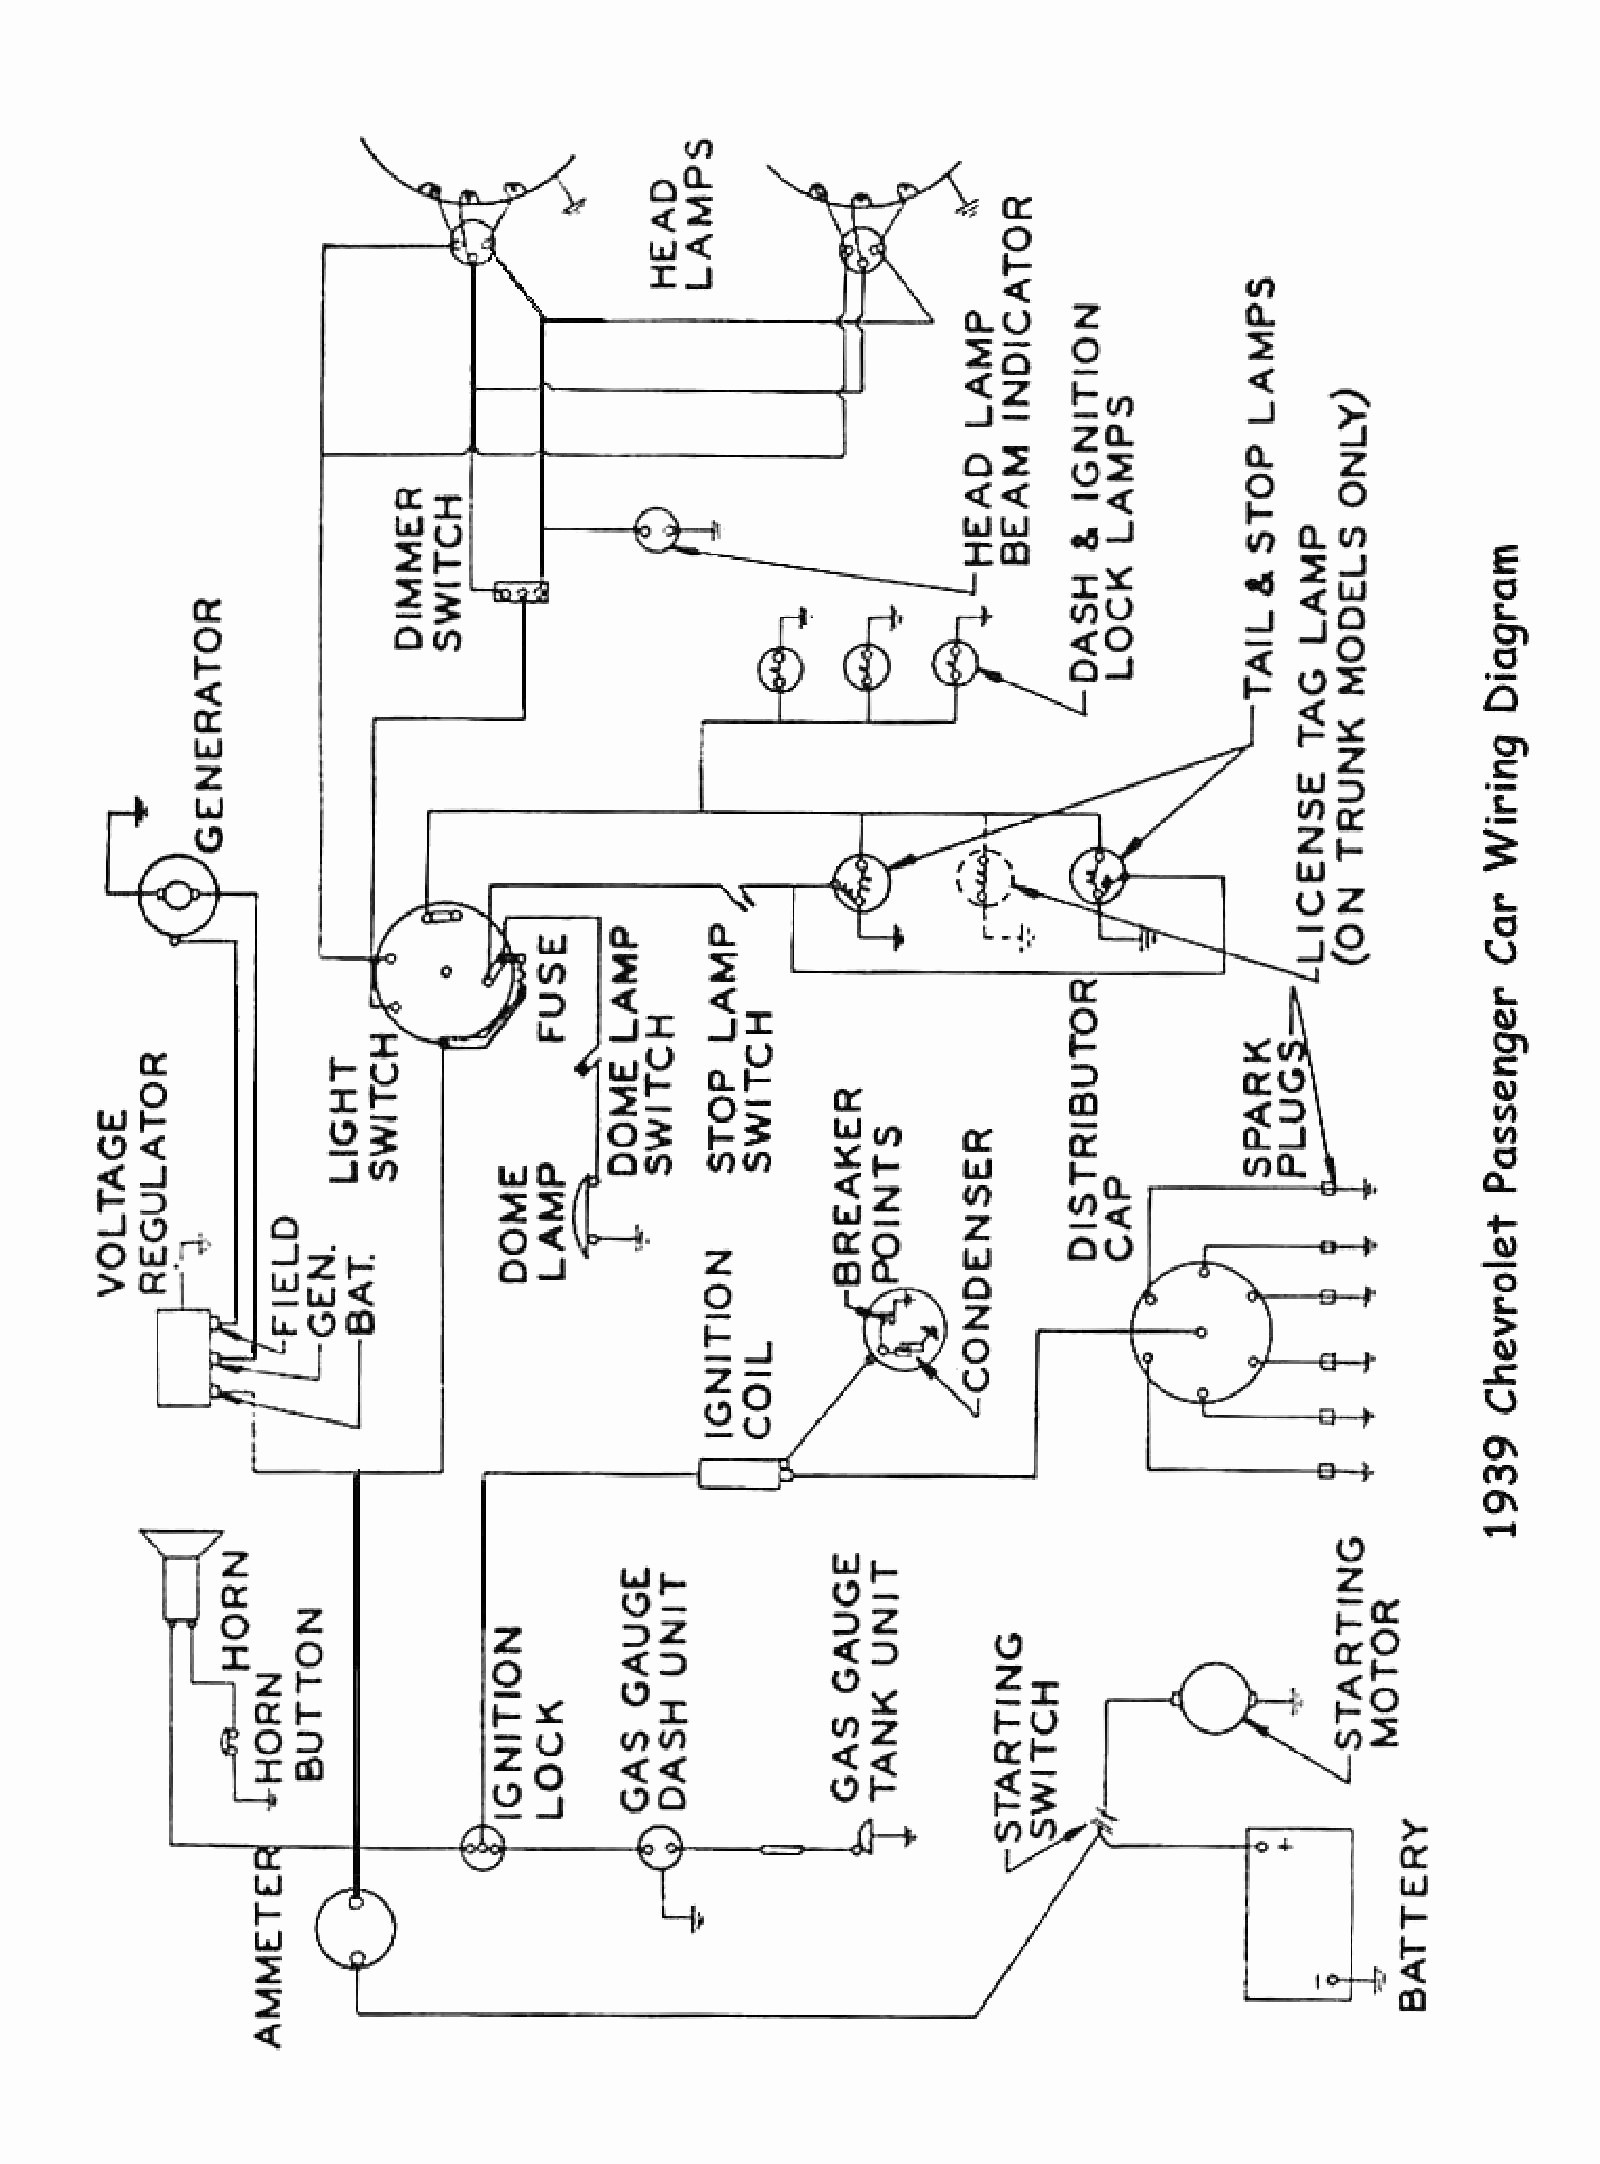 How To Wire Ammeter Elegant Wiring Diagram Image Signal Stat 900 Turn Inspirational